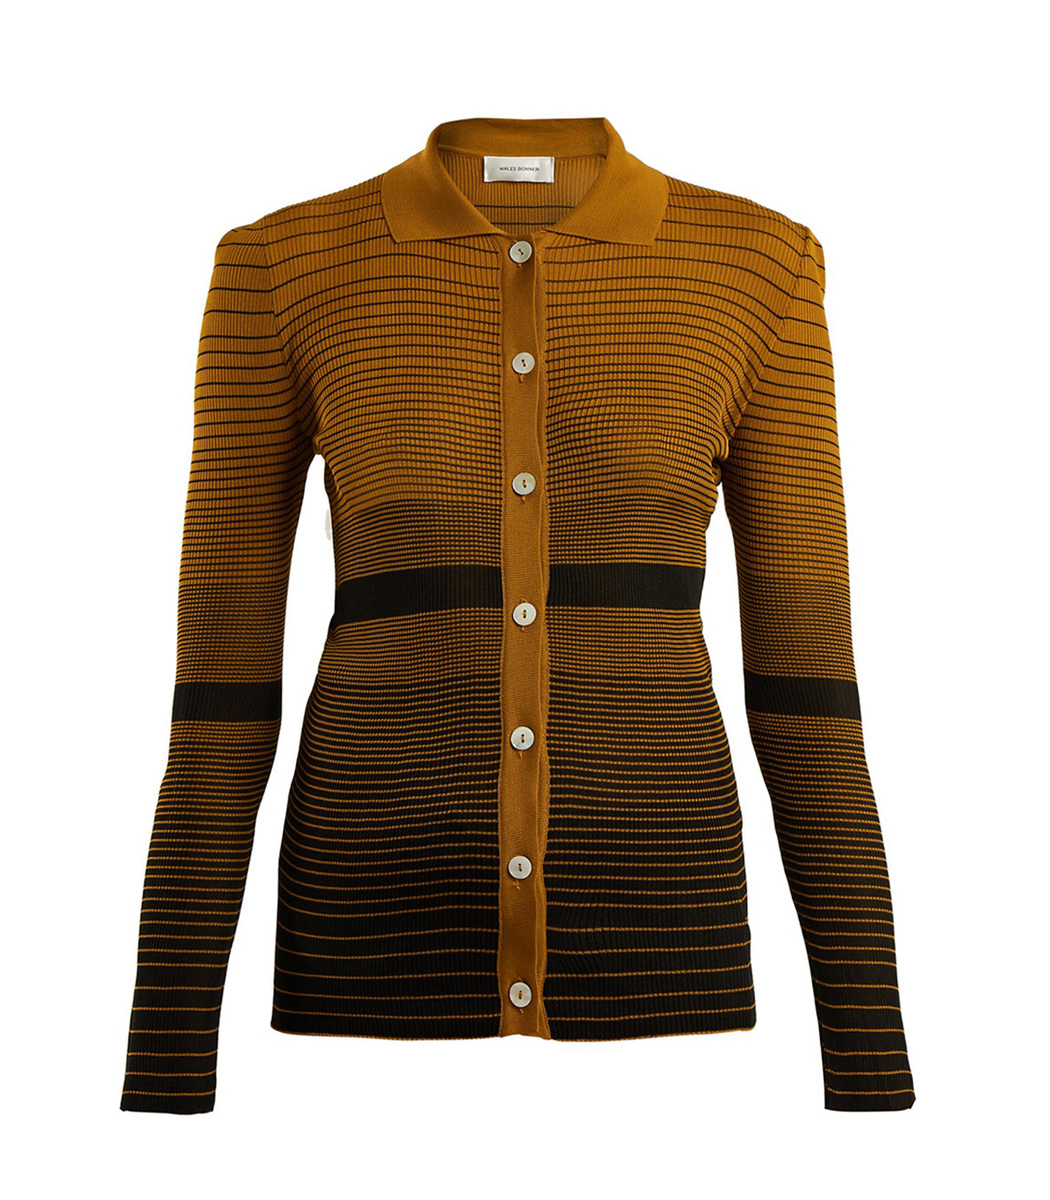 Wales Bonner Yellow/Black Spread Collar Striped Jacquard Cardigan